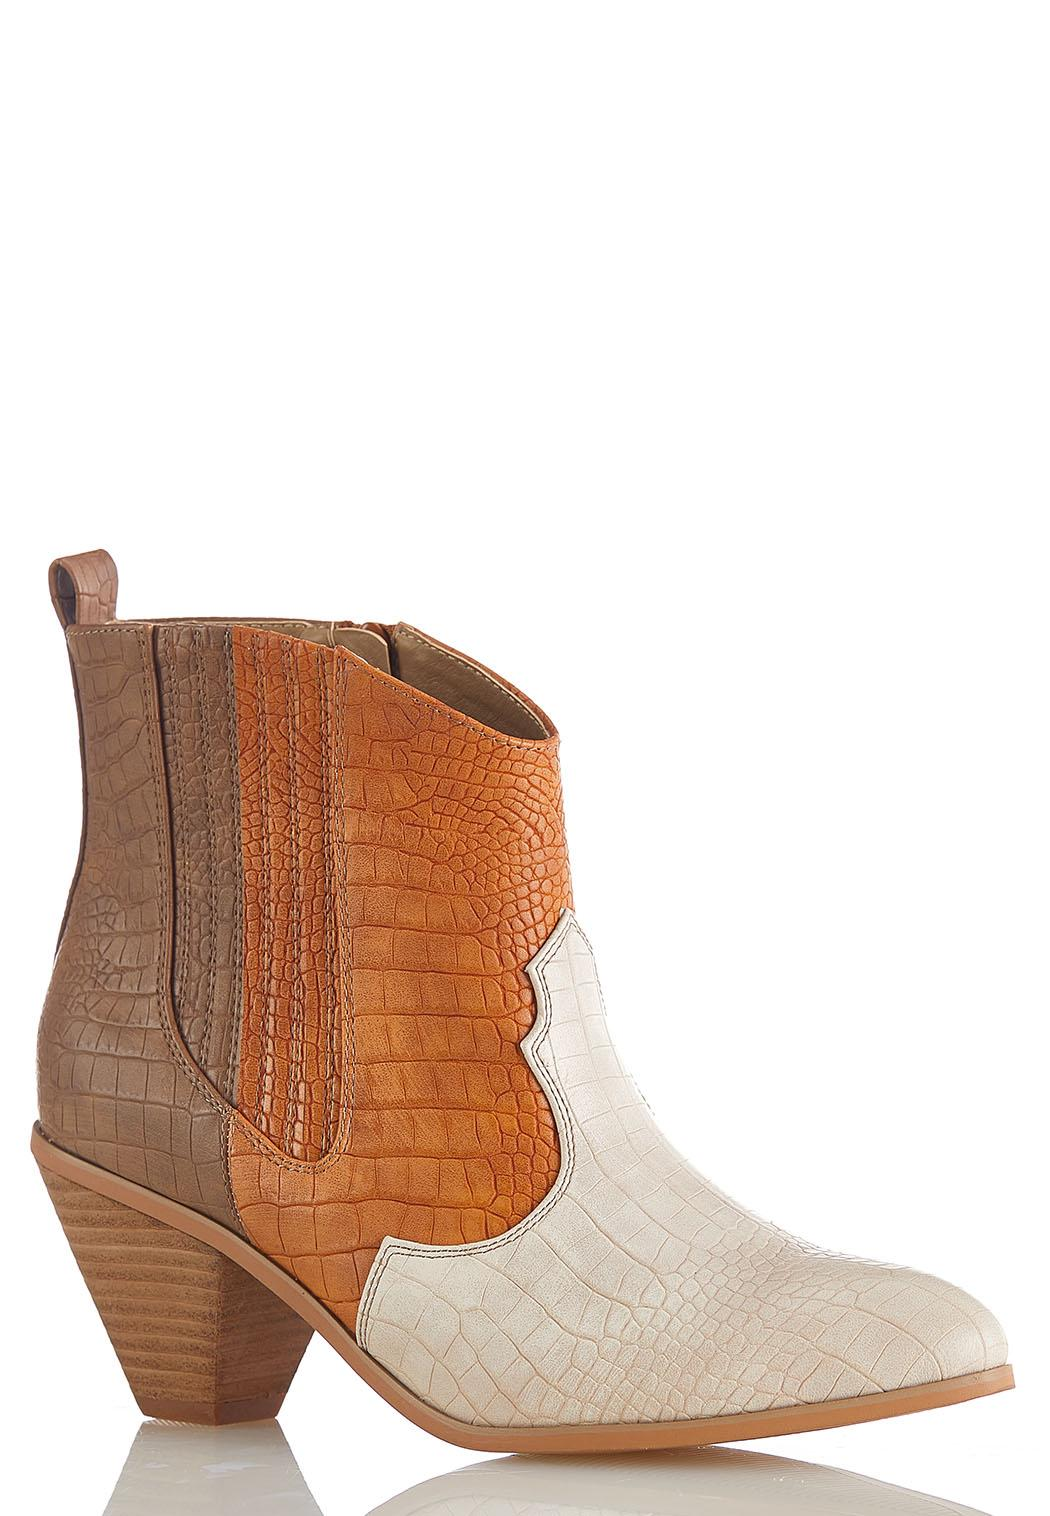 Croc Western Ankle Boots